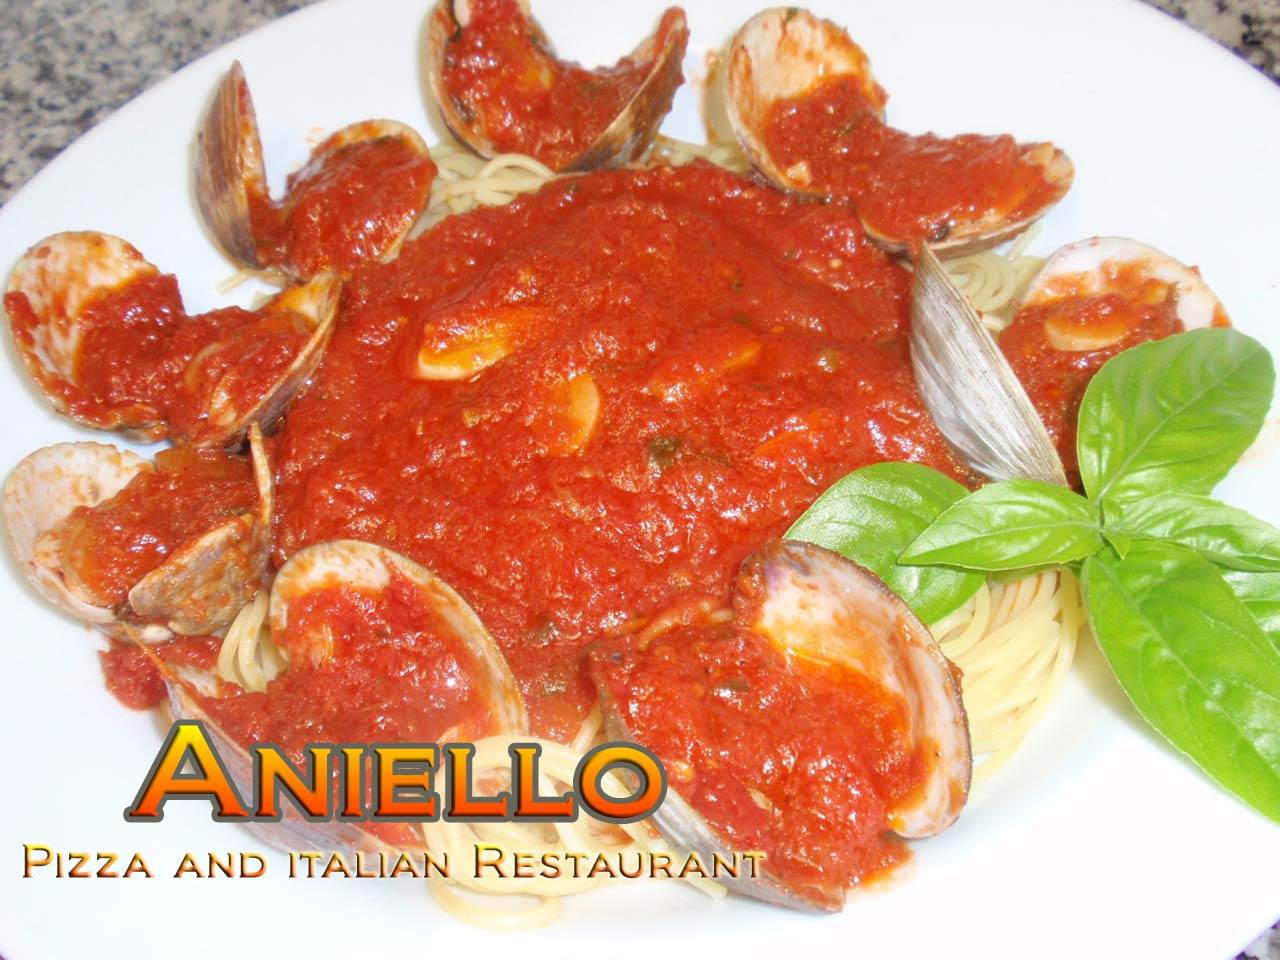 Aniello's Linguini with clams